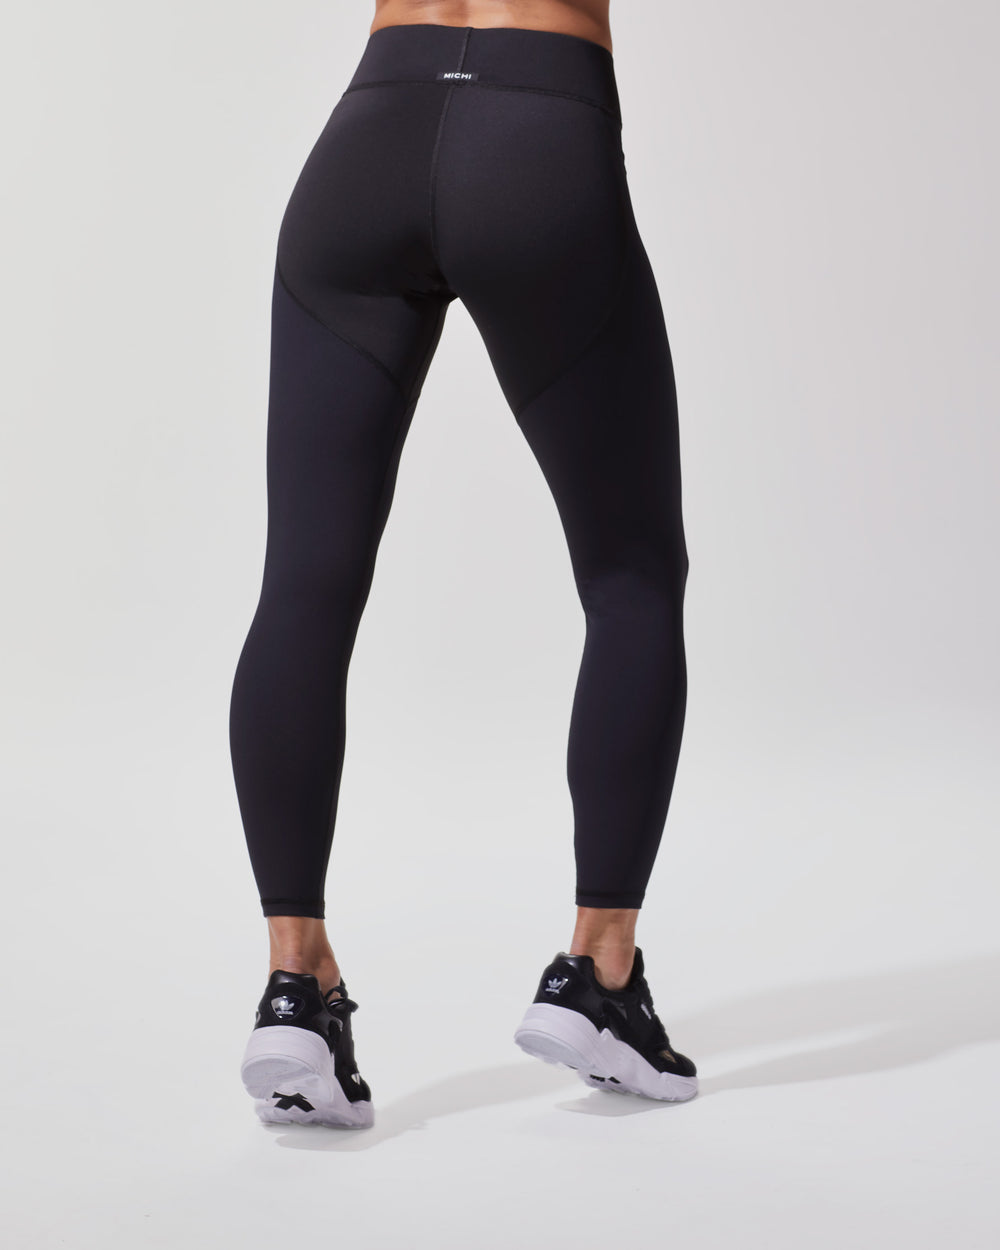 Cadence Legging - Black